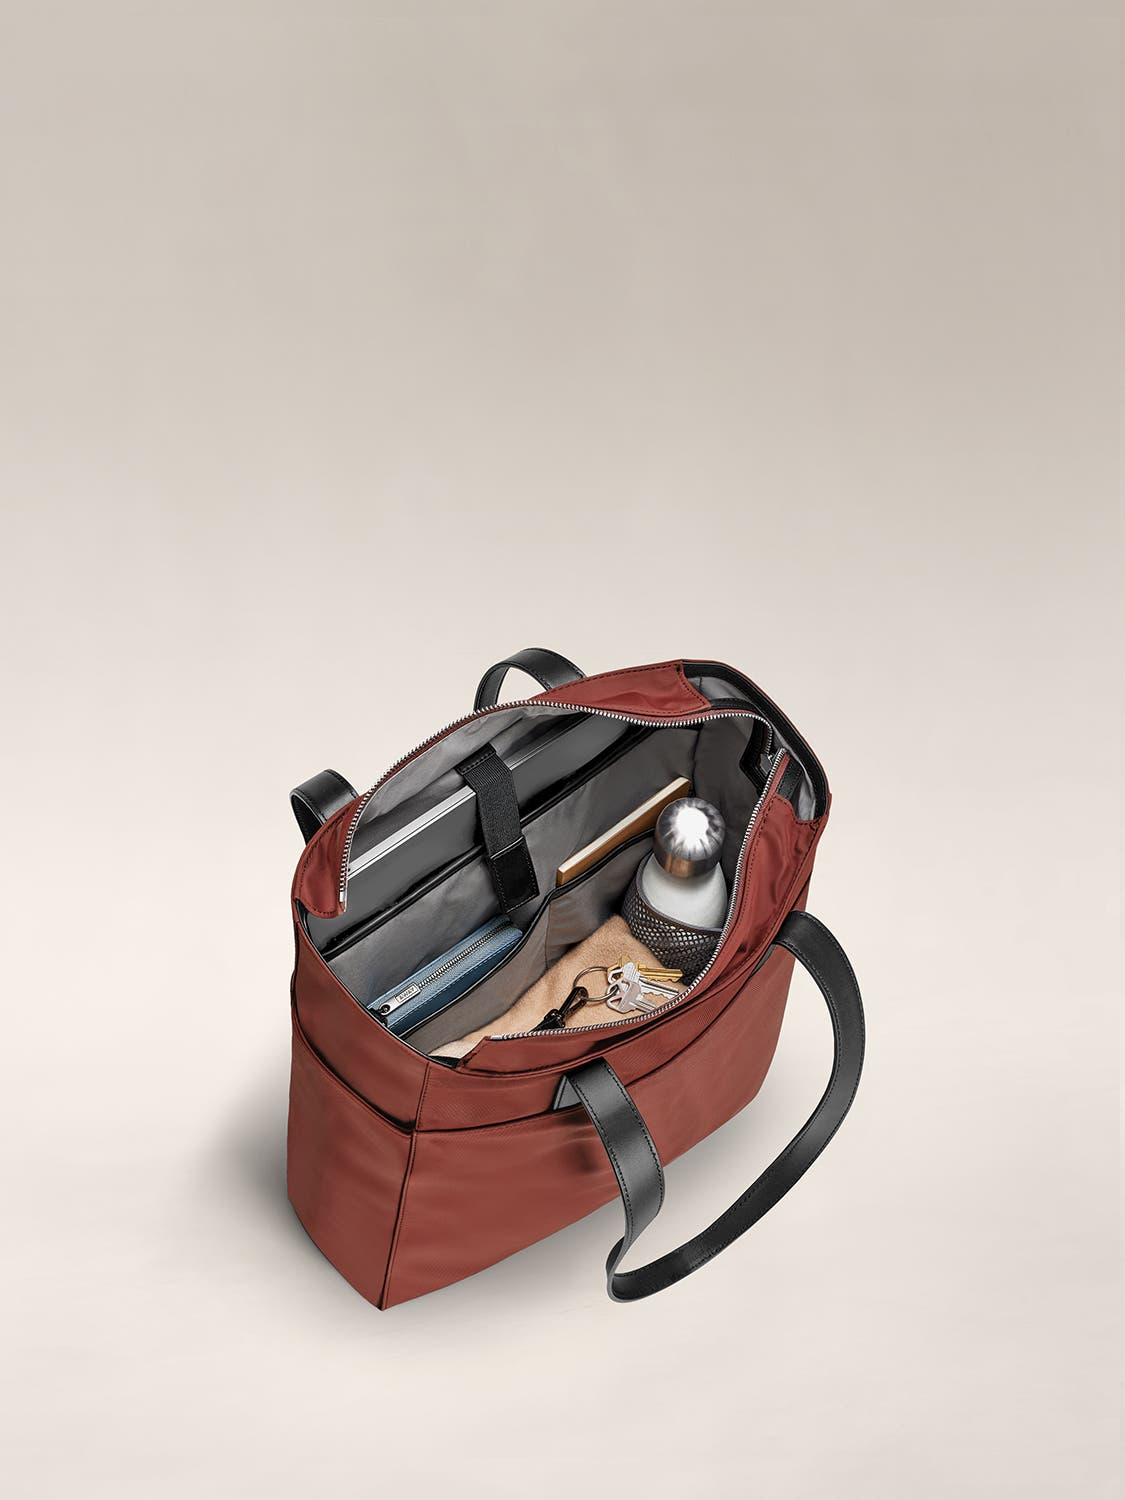 Fully packed and organized internal view of a brick red tote shoulder bag.